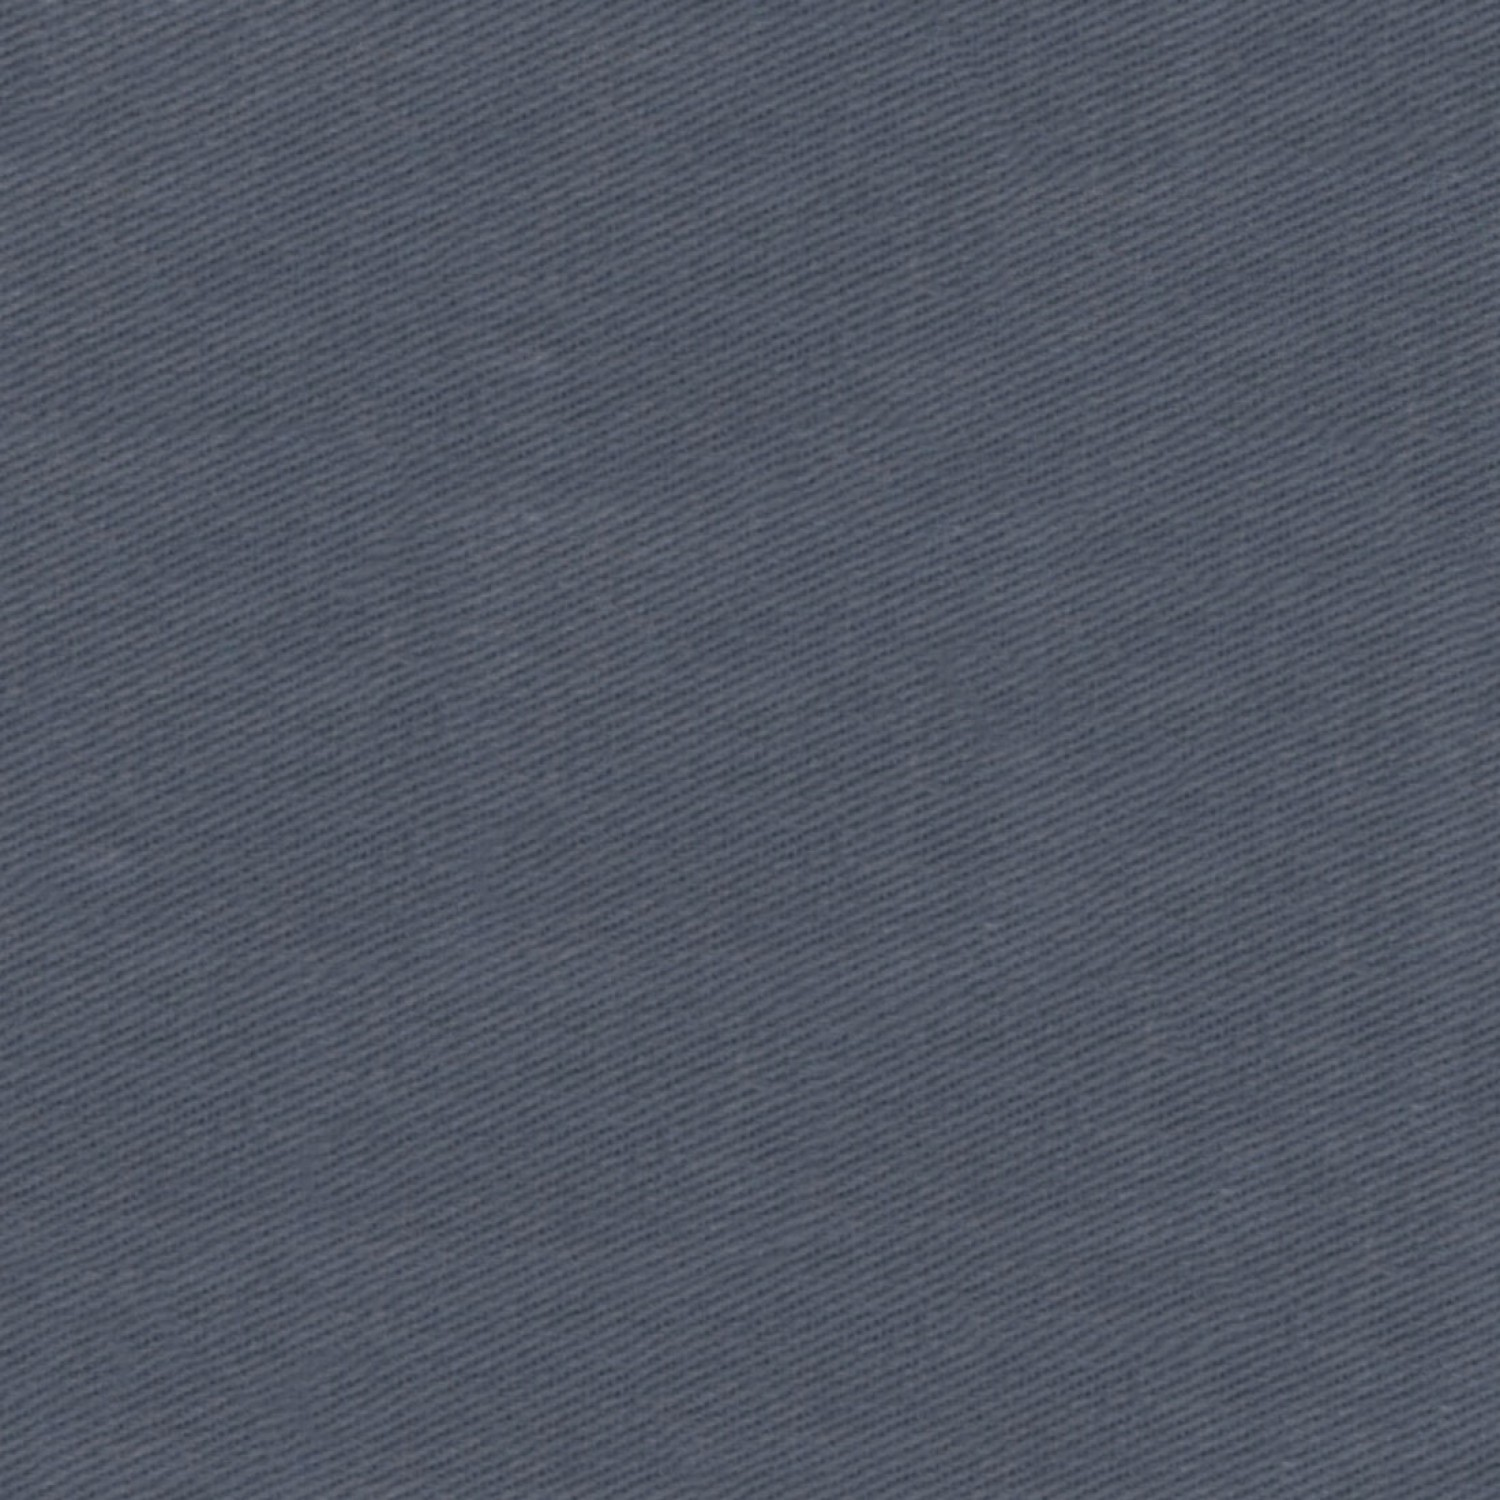 "Milestone Twill GunMetal Grey Fabric 7oz - 60"" Wide x Per Yard"